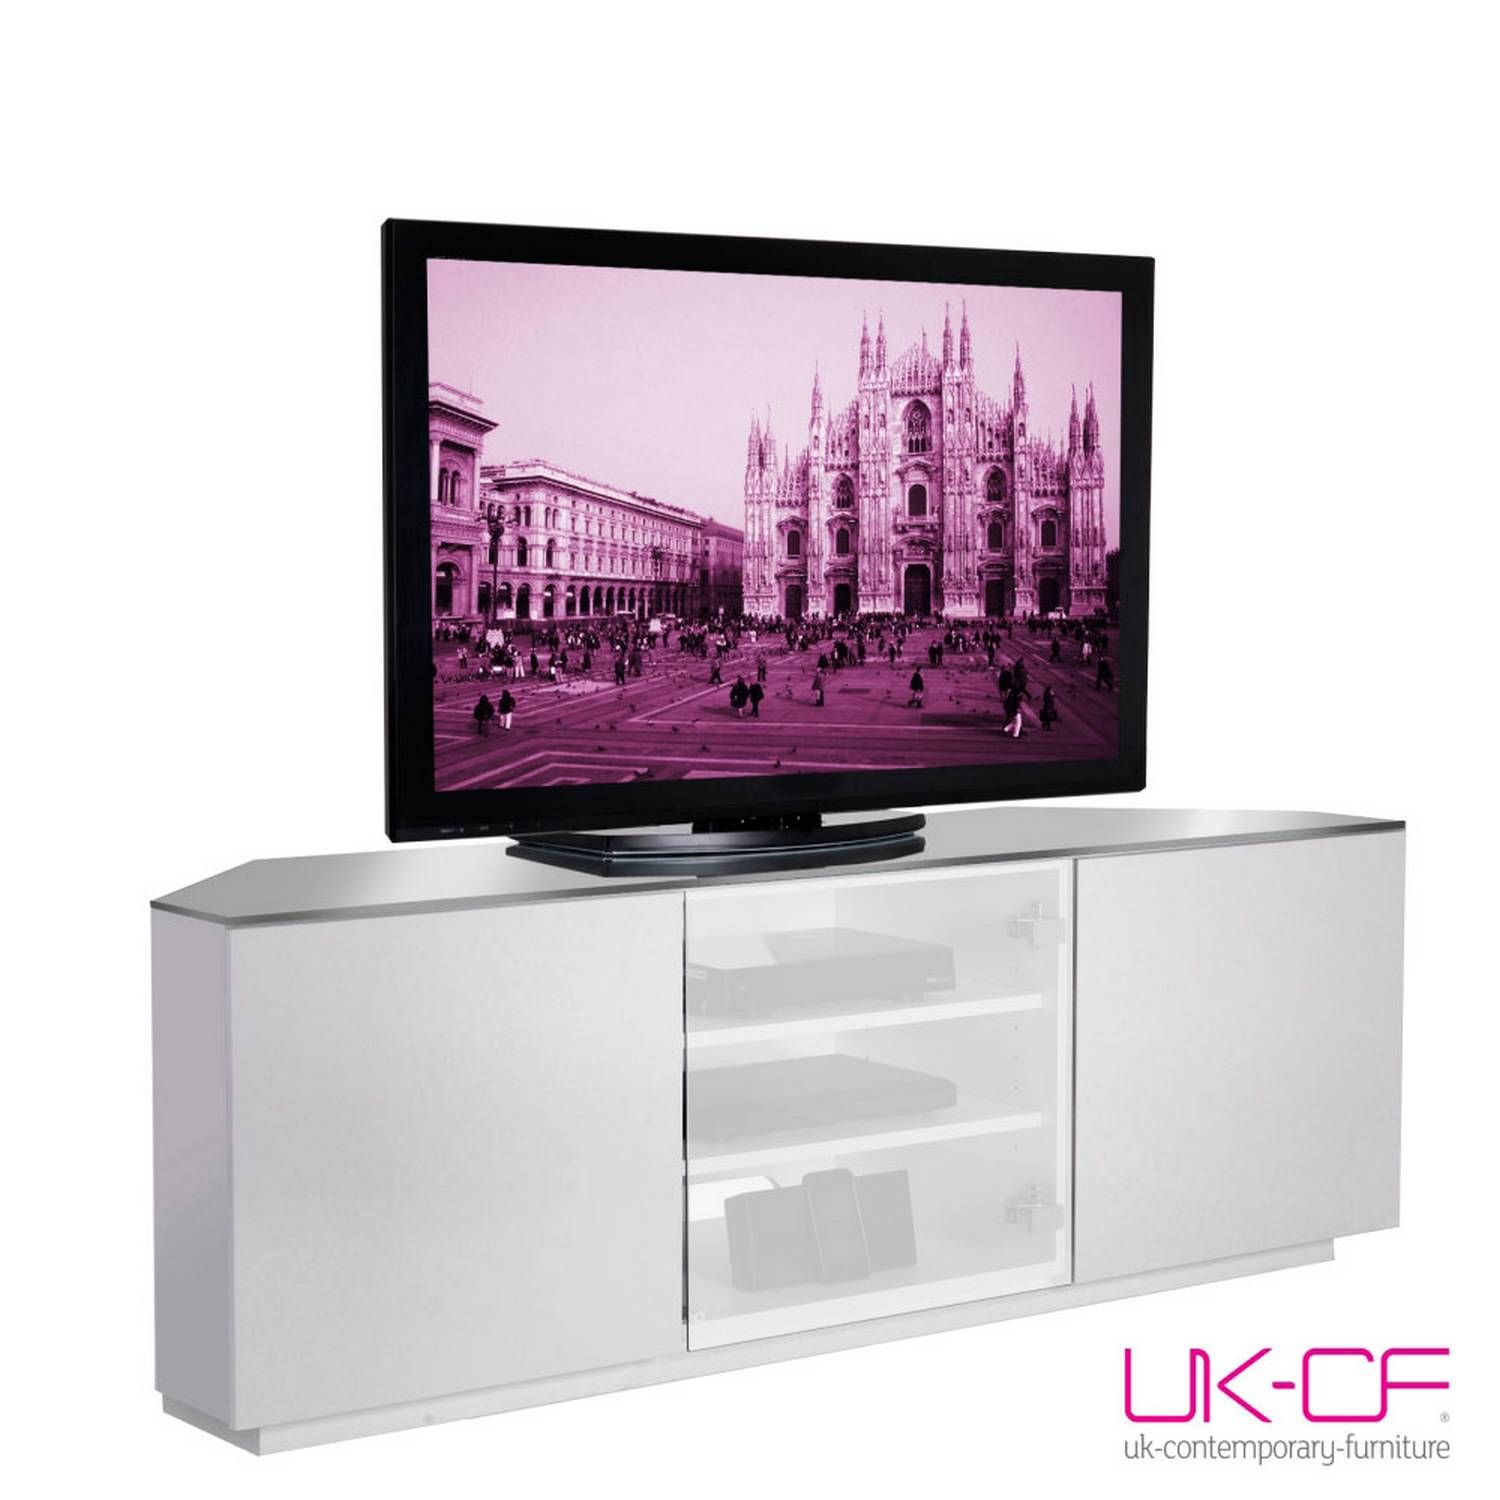 Ukcf Milan White Gloss Corner Tv Stand With White Glass